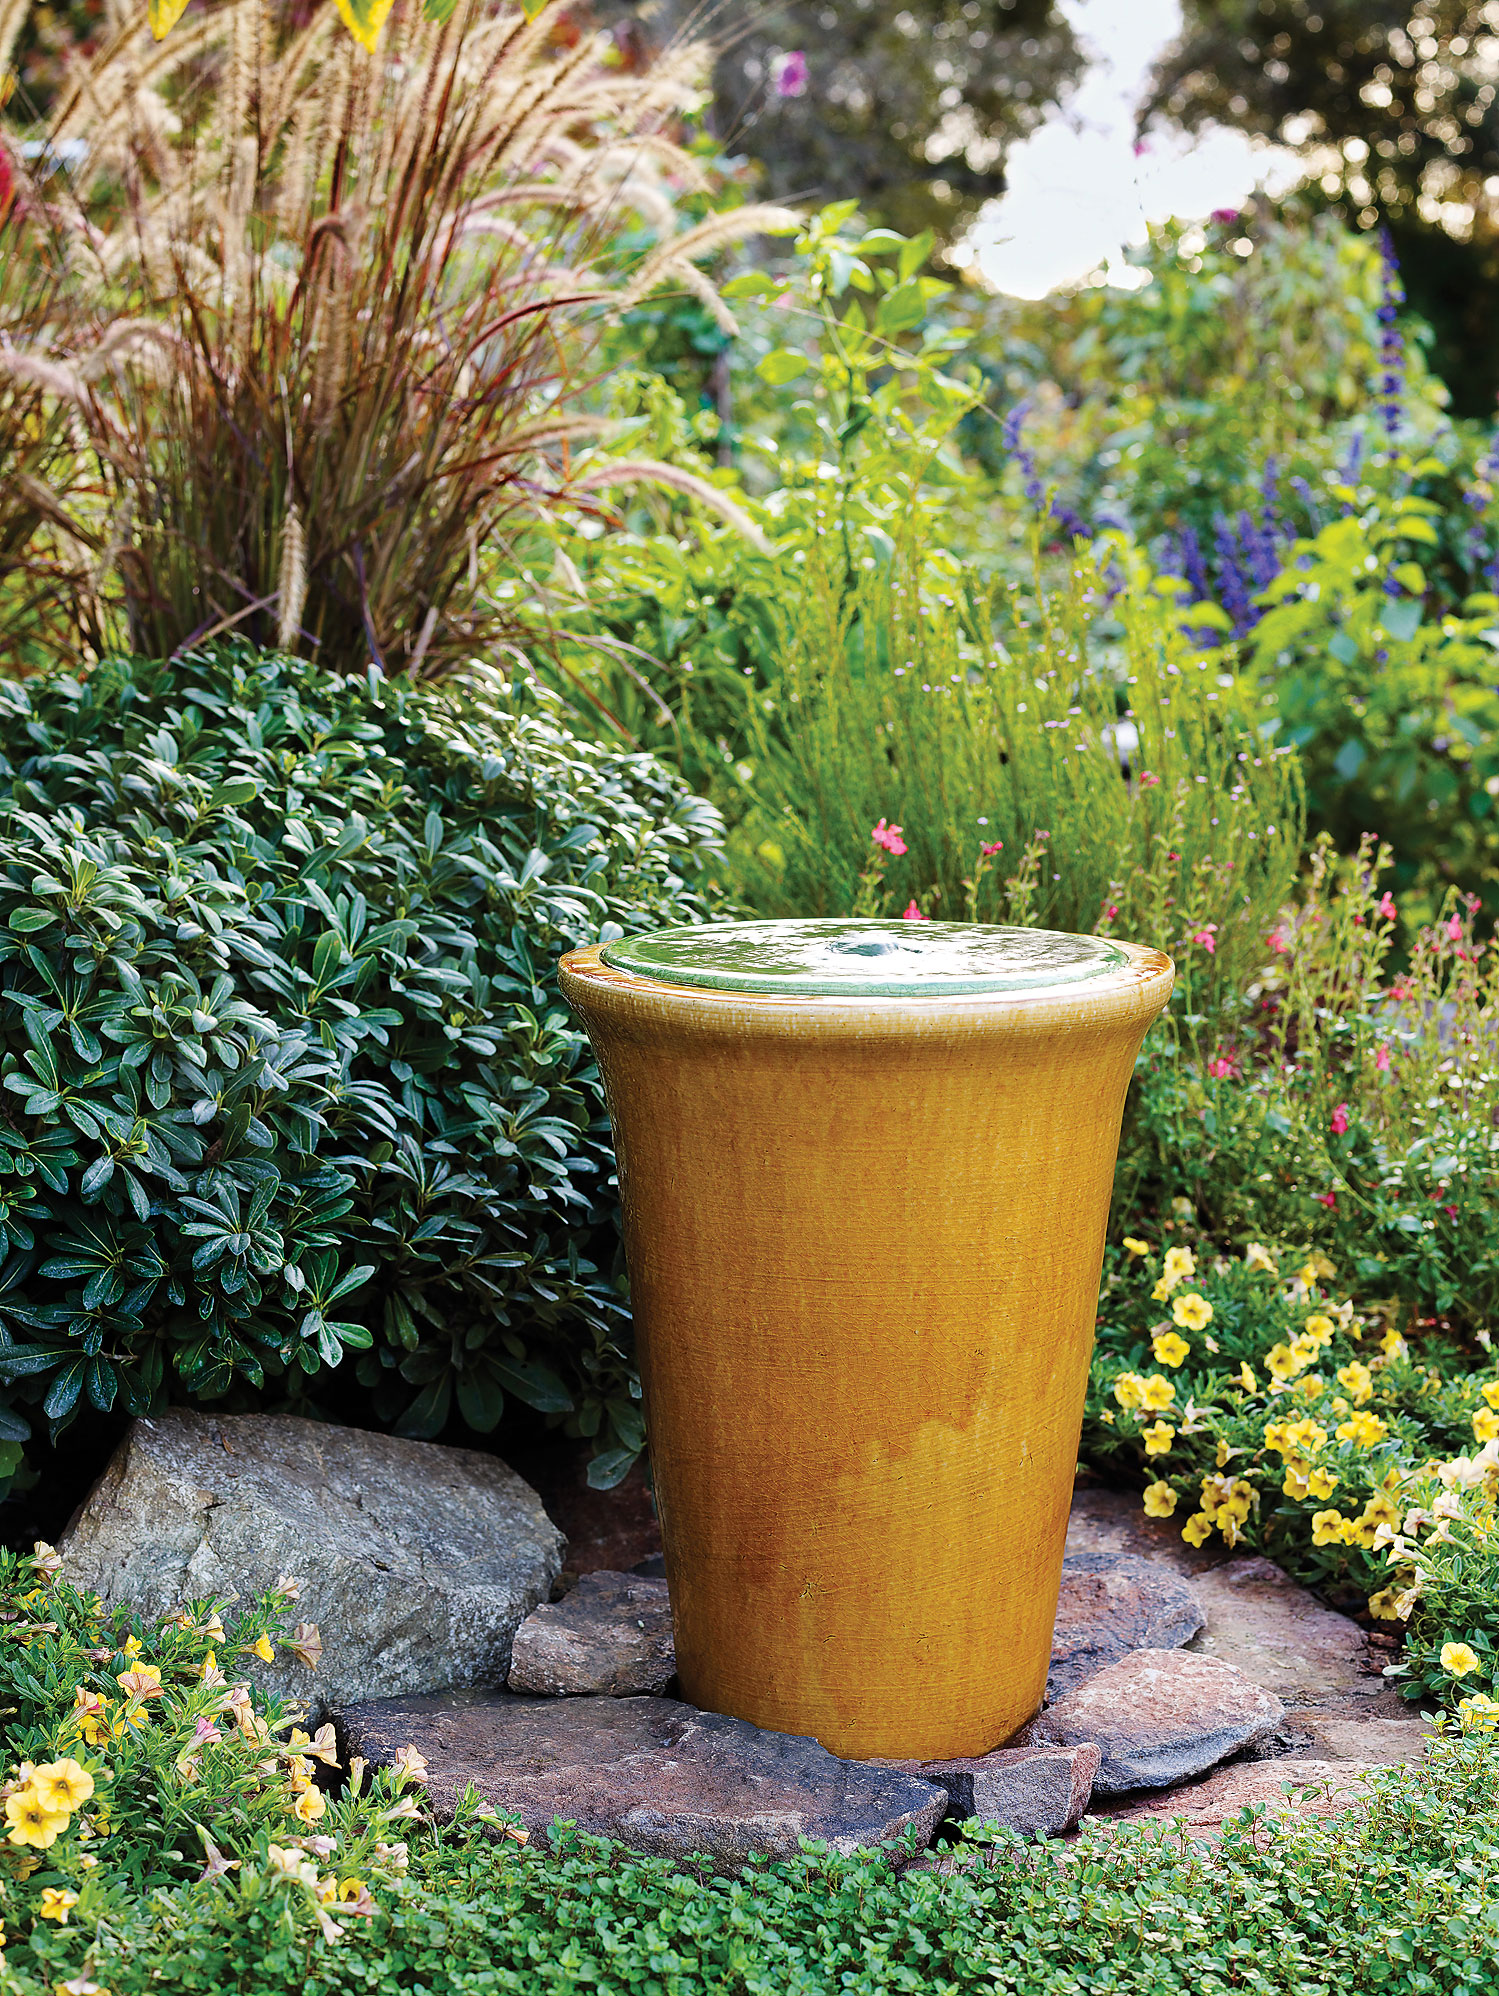 Shapely Diy Fountain Diy Garden Projects Sunset Sunset Magazine John Deere 52 Backyard Landscaping Projects Backyard Ideas Projects outdoor Backyard Landscaping Projects